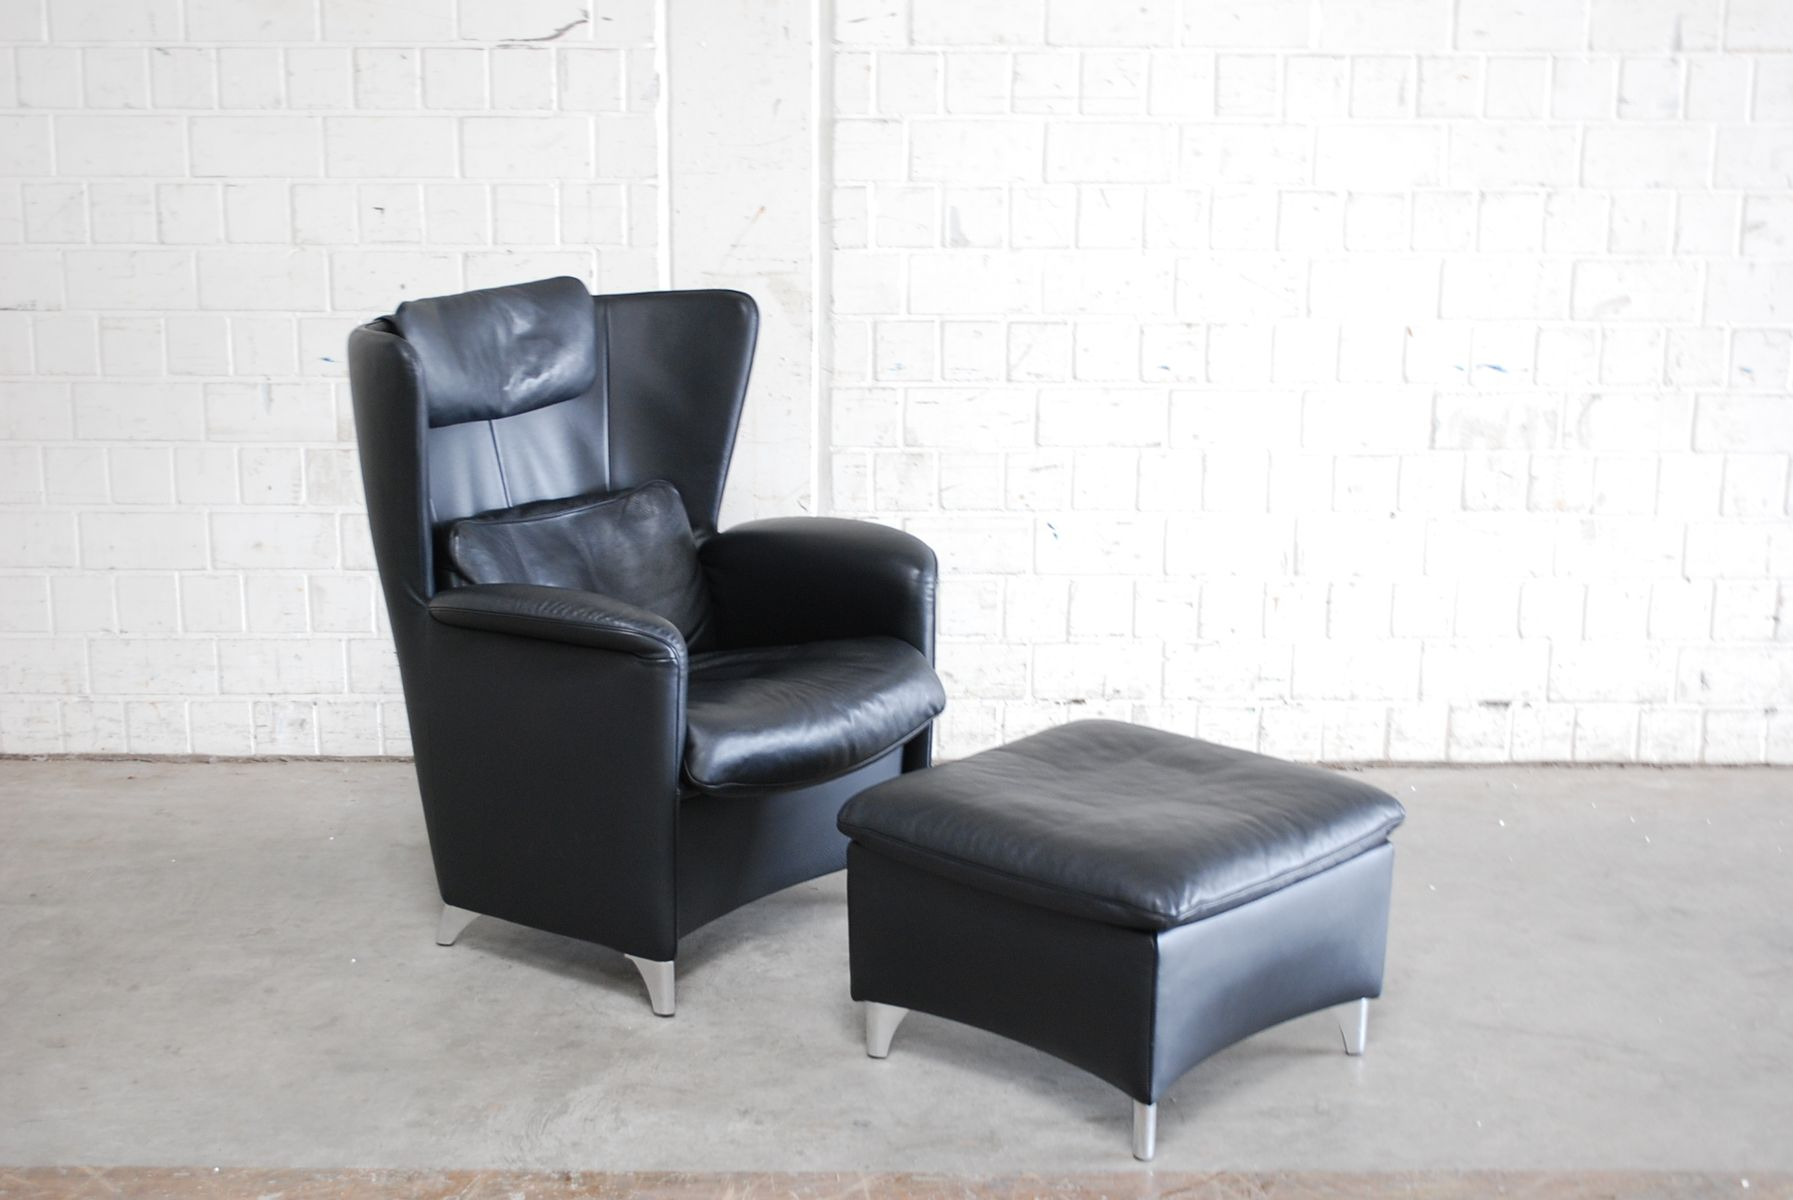 fauteuil oreilles et ottomane ds 23 en cuir noir par. Black Bedroom Furniture Sets. Home Design Ideas